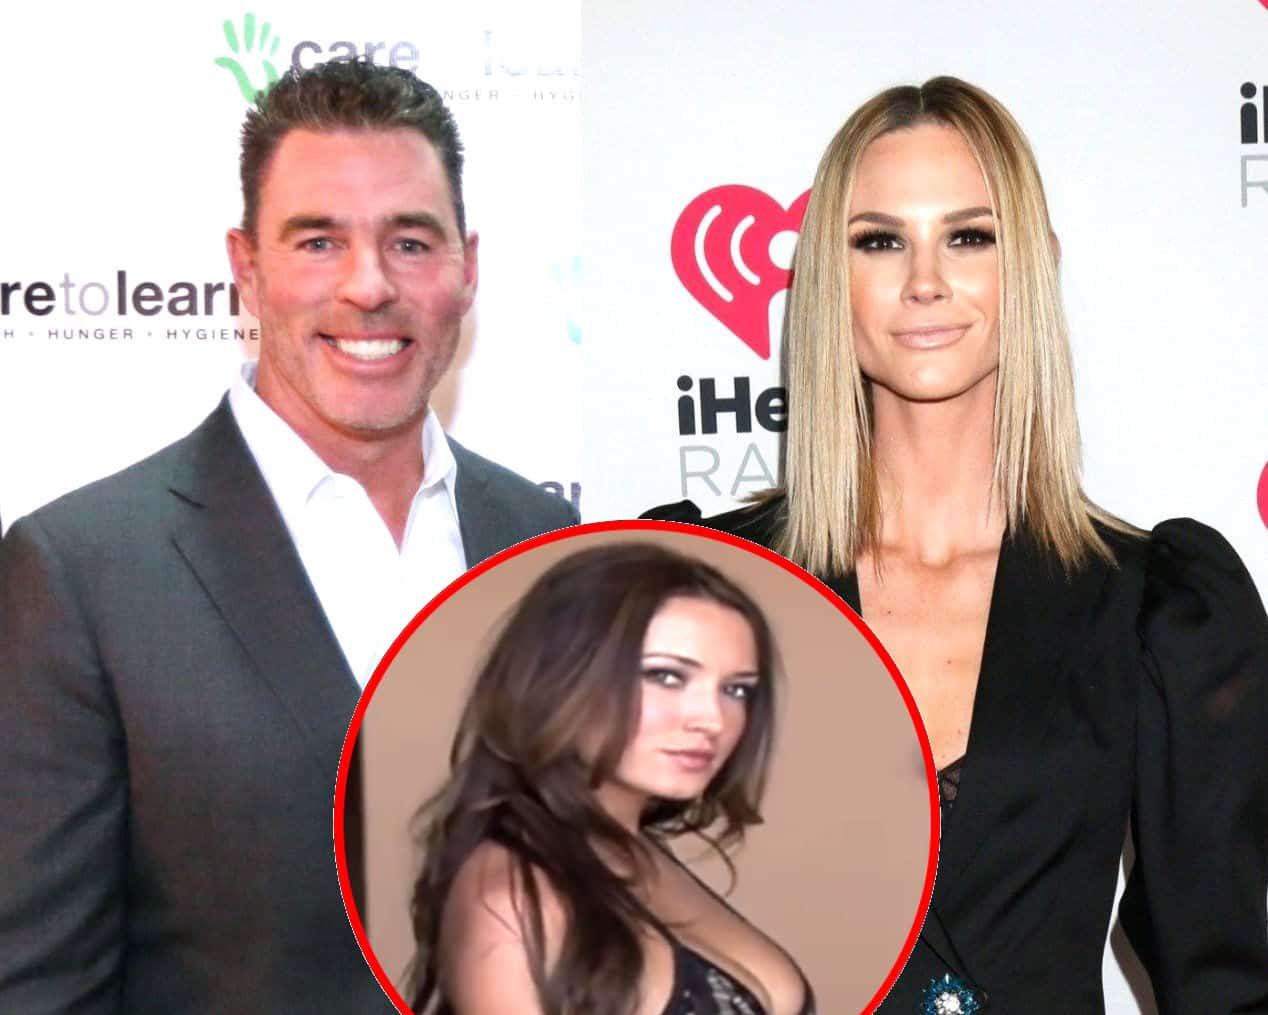 PHOTOS: Jim Edmonds' New Girlfriend Identified as Kortnie O'Connor After Meghan Alleges She's a Former Friend Who They Once Hooked Up With, Plus Jim Slams Meghan Again